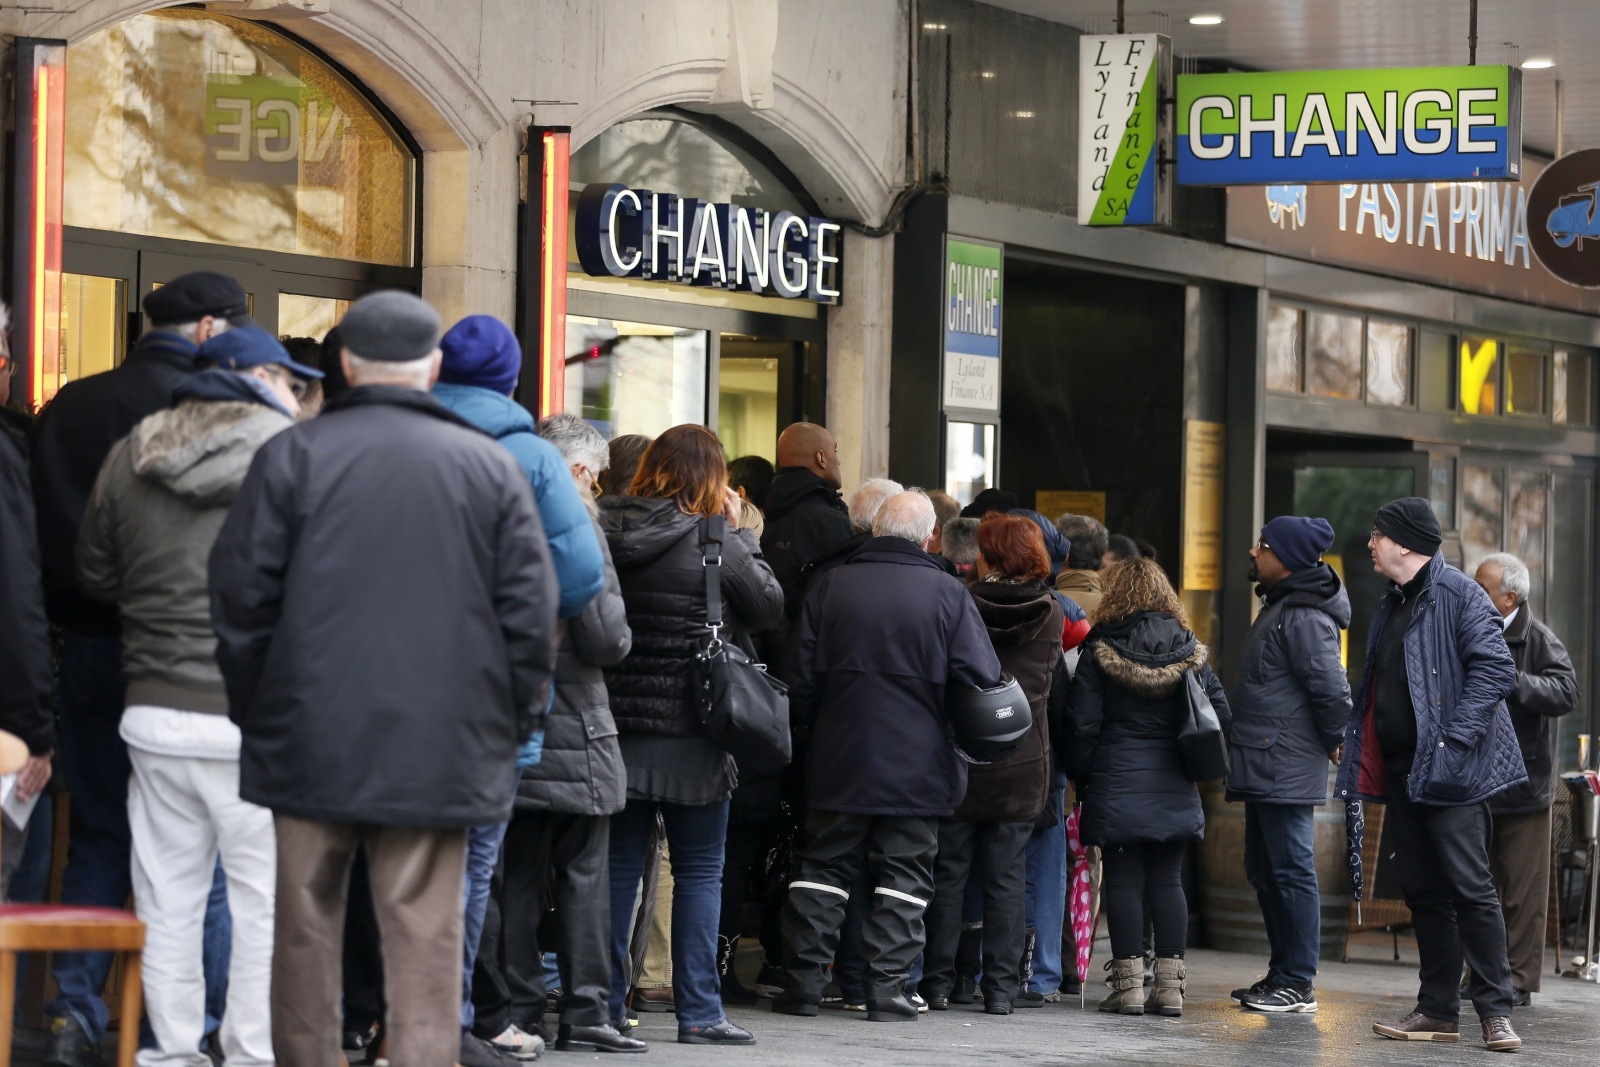 People queue outside a currency exchange office in Geneva, January 16, 2015. Swiss stocks sank on Friday, extending the sell-off sparked by the Swiss National Bank's surprise decision to remove a ceiling on the Swiss franc that sent the currency soaring.